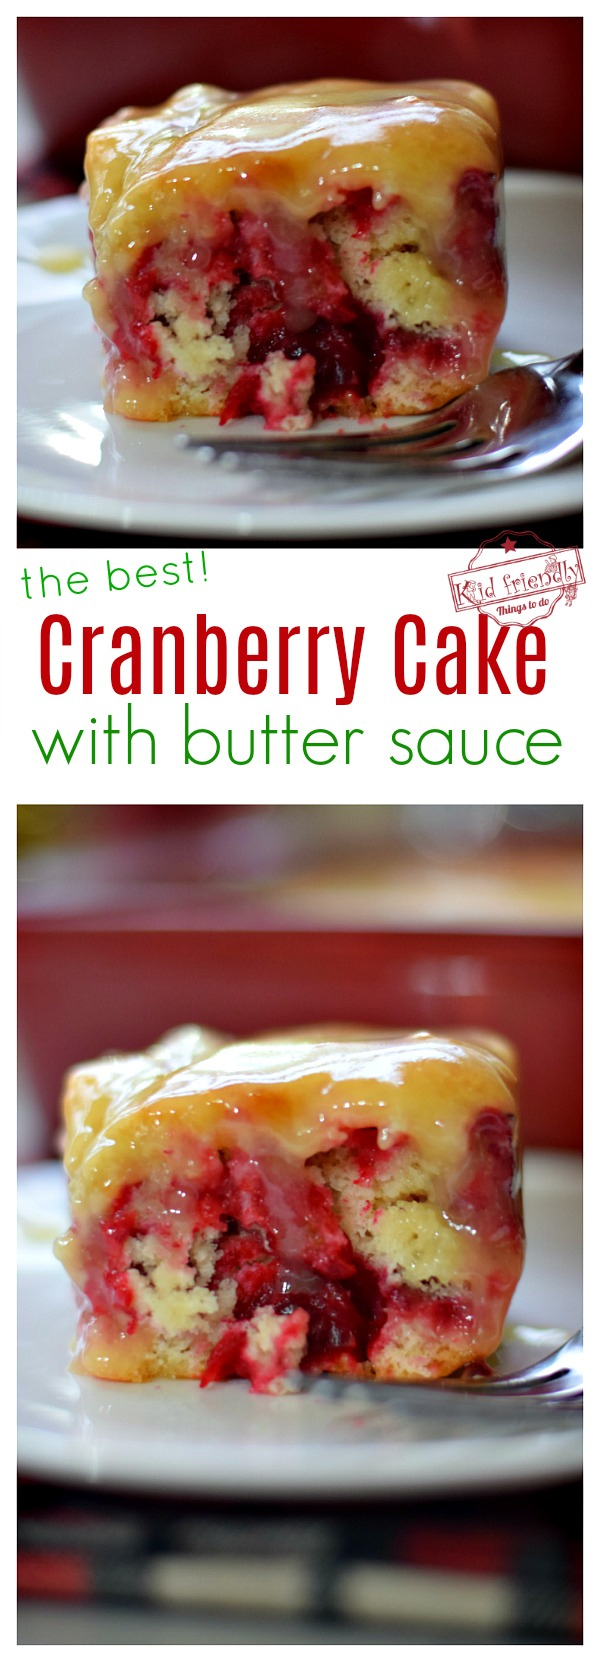 Christmas Cranberry Cake with Butter Sauce Recipe